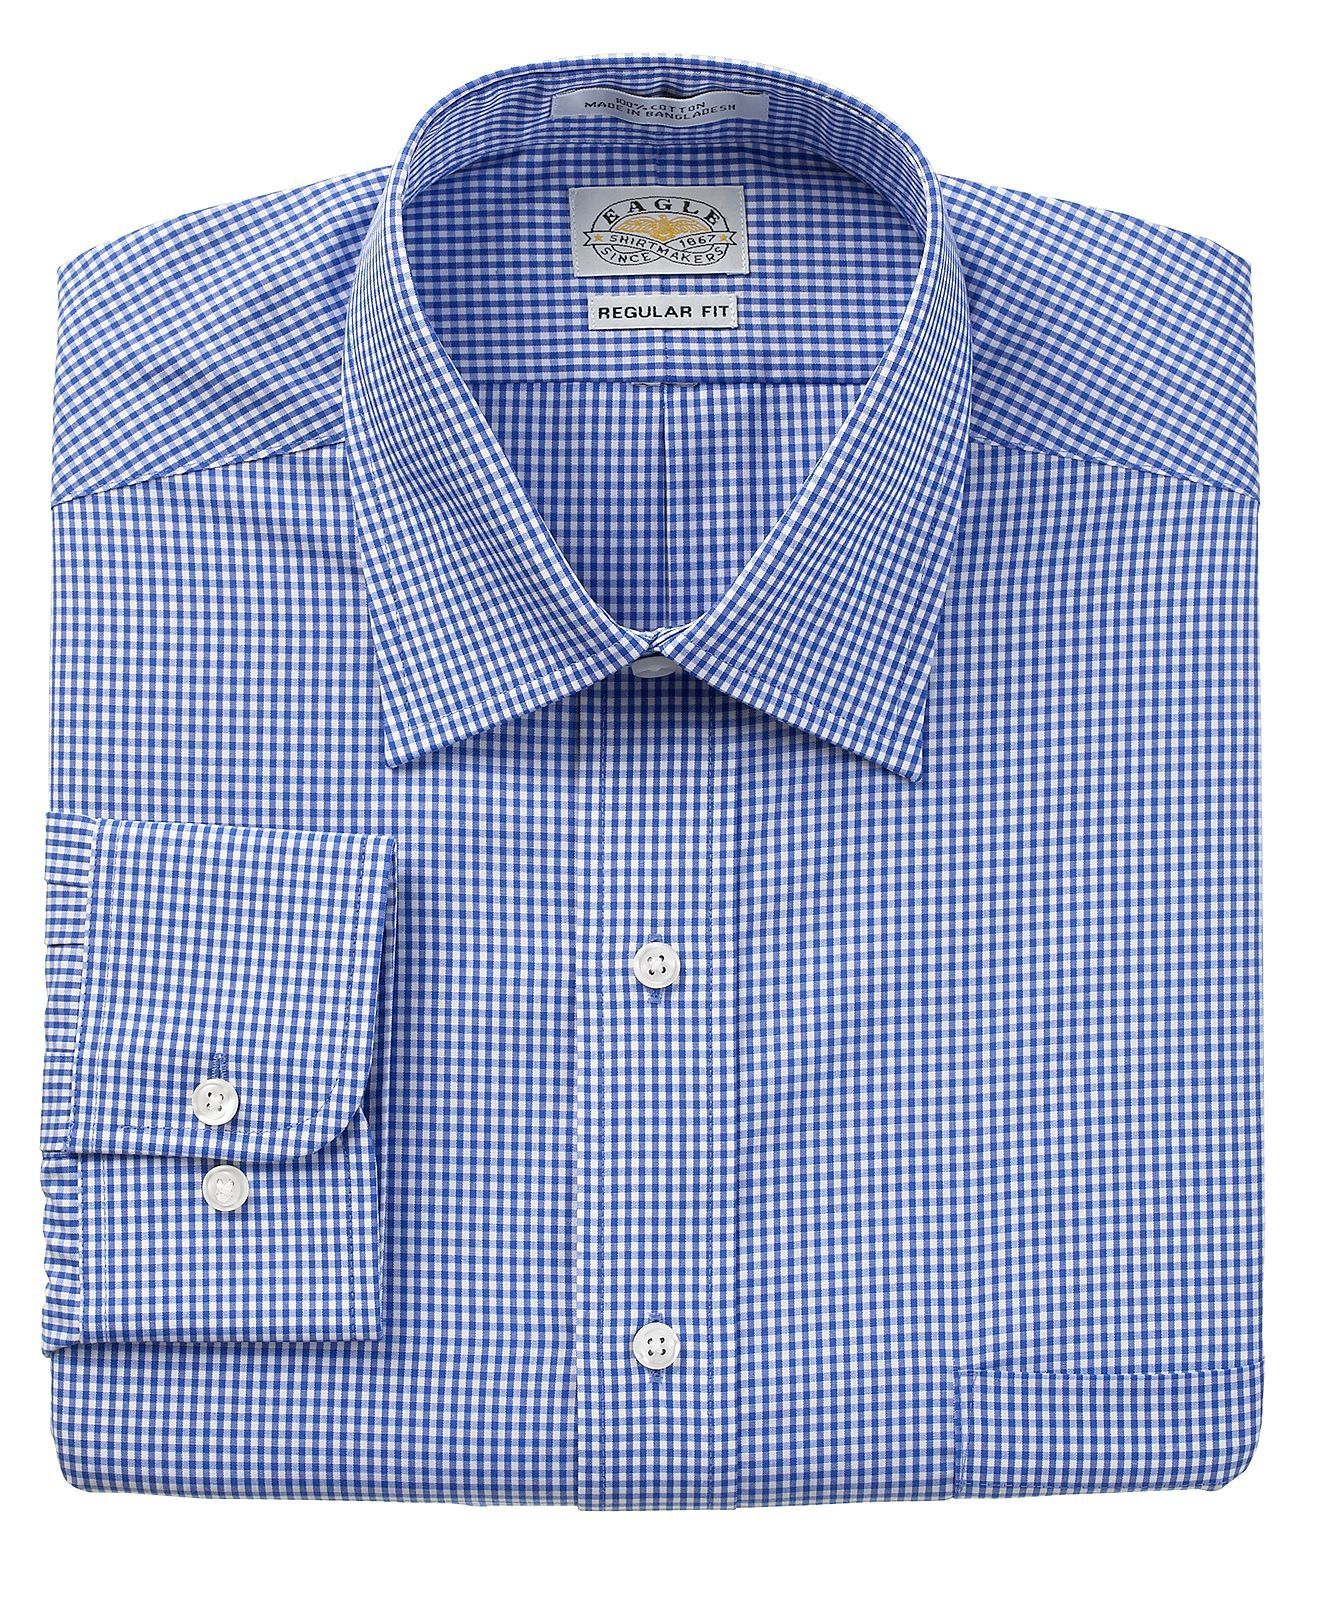 19ad64a6199 Eagle Dress Shirt, Blue Check Long Sleeve Shirt - Mens Dress Shirts ...